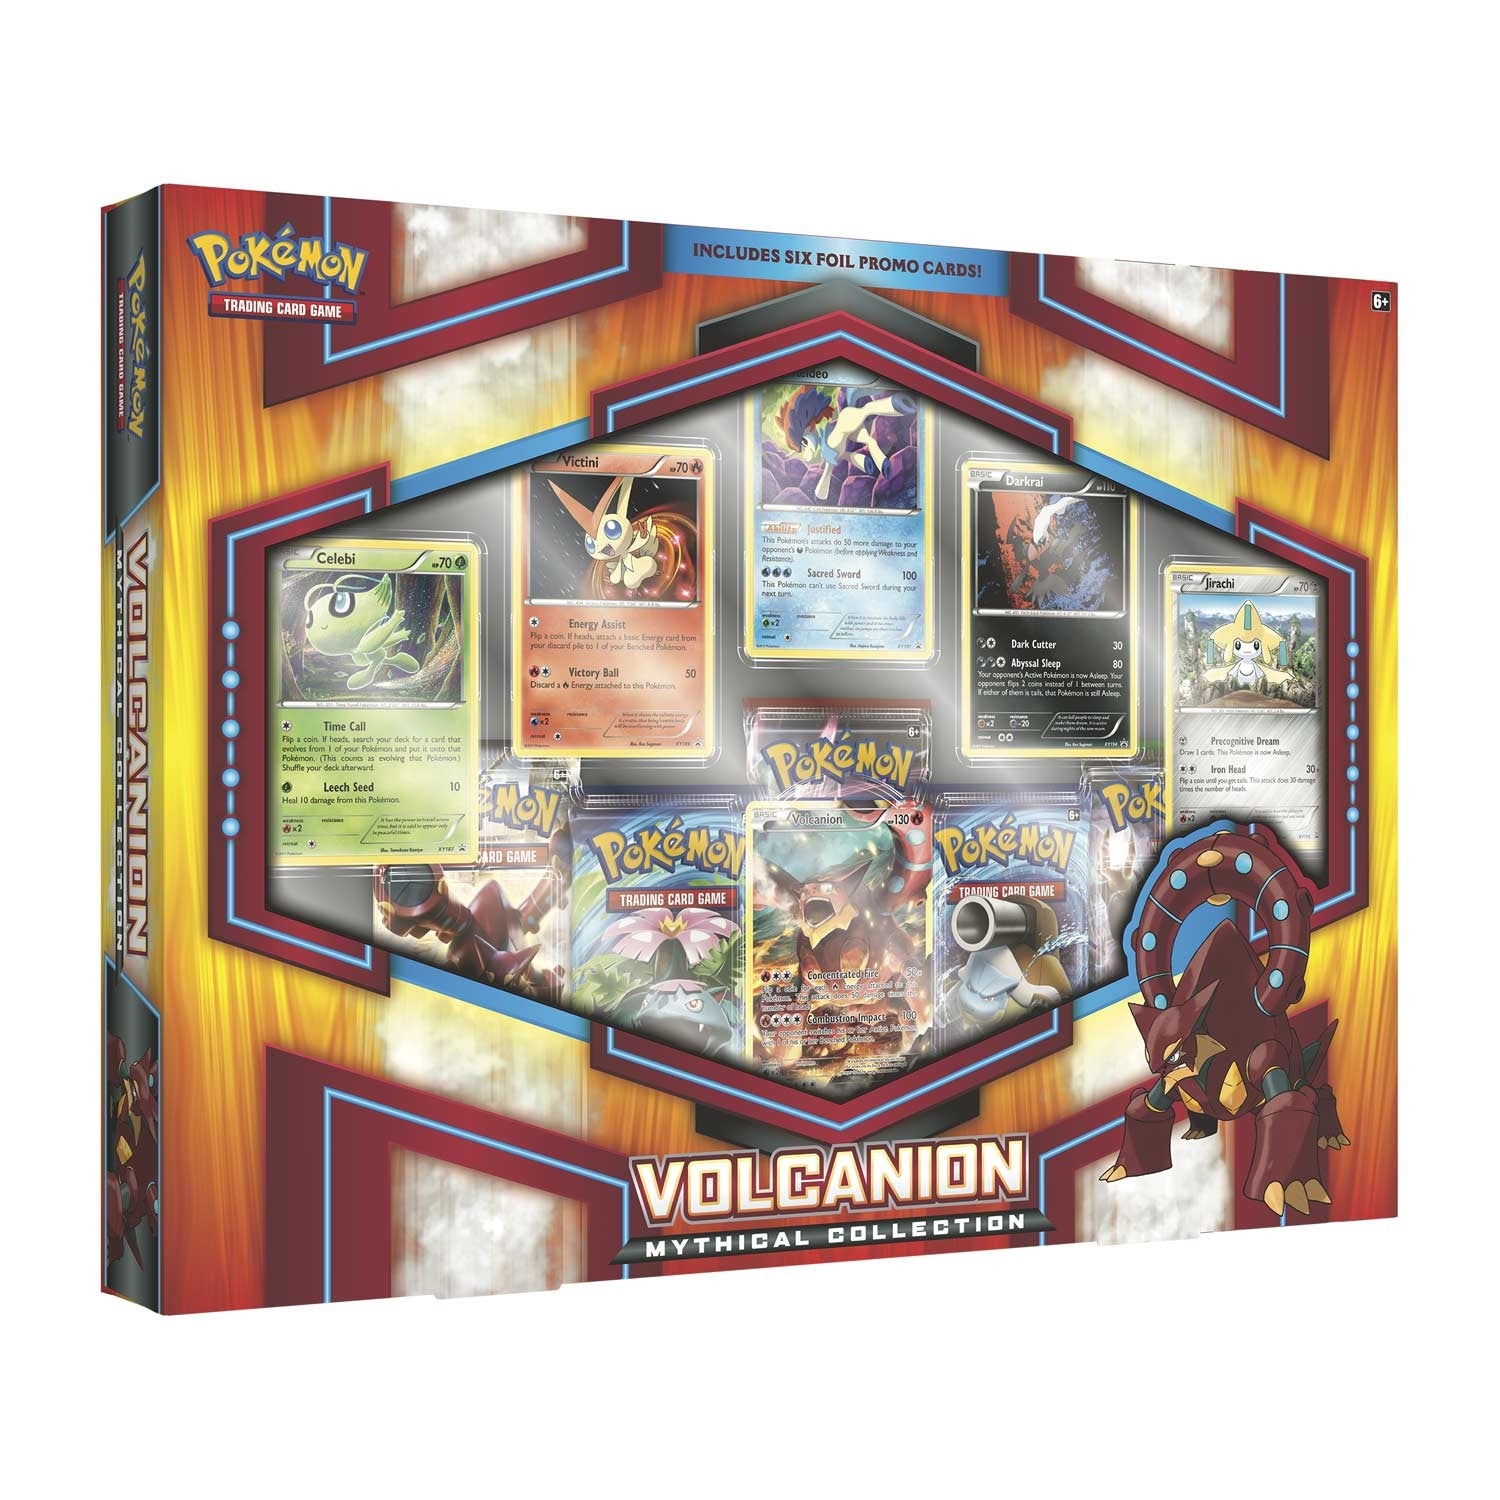 Pokémon Mythical Collection Volcanion Box